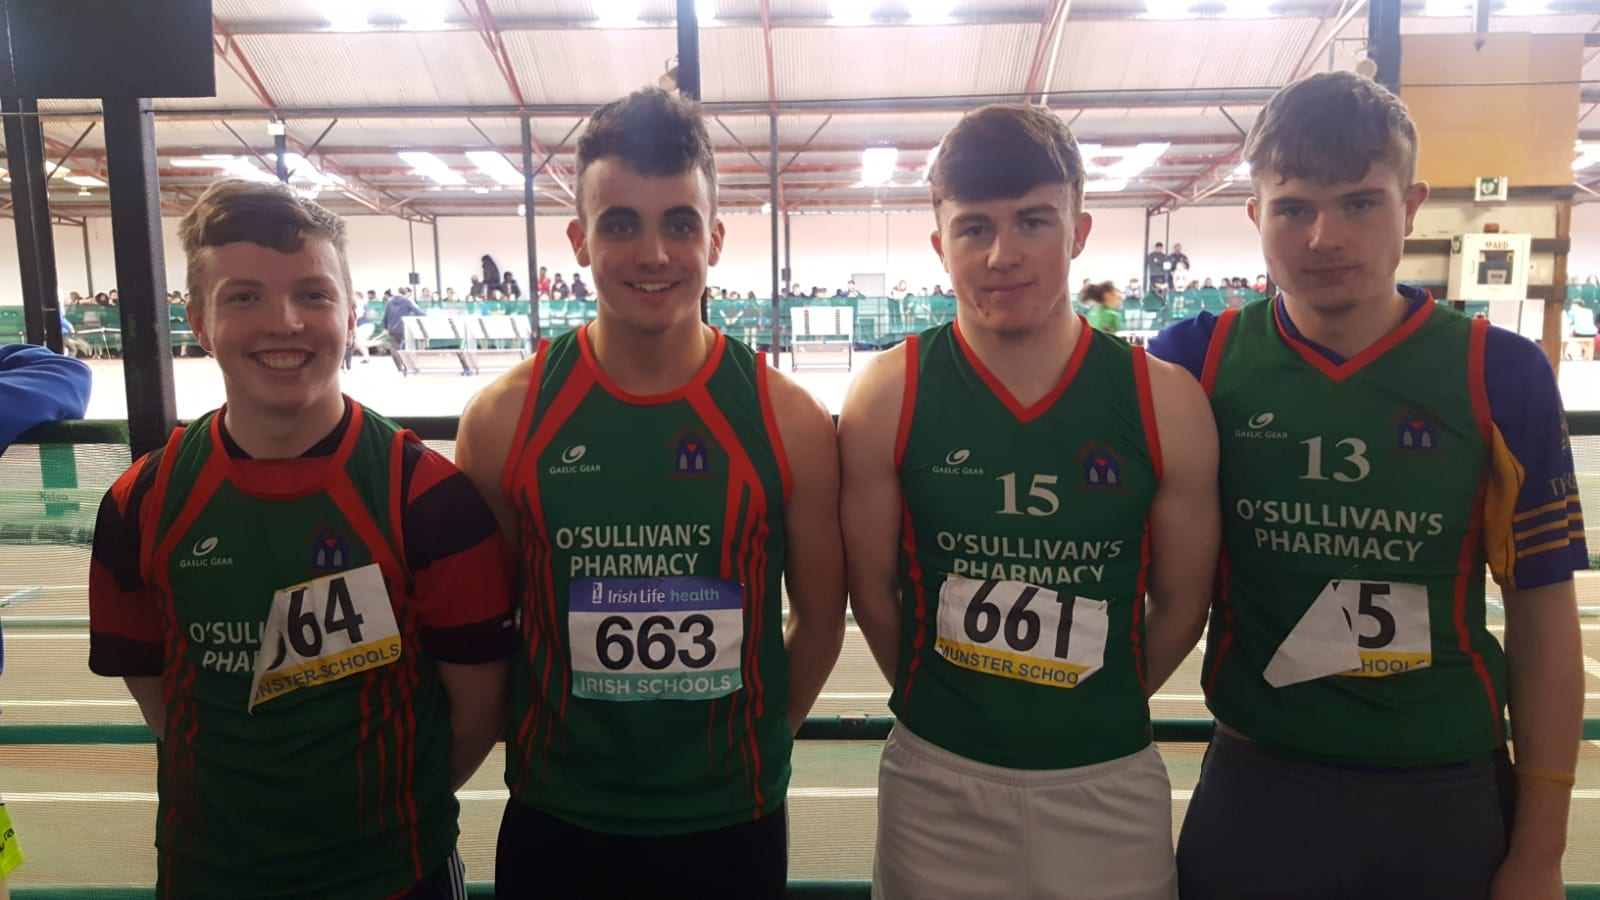 Cormac Browne, Oísín O'Sullivan, Jack Corkery and Danny Moriarty at the Munster Athletic School Games 2019